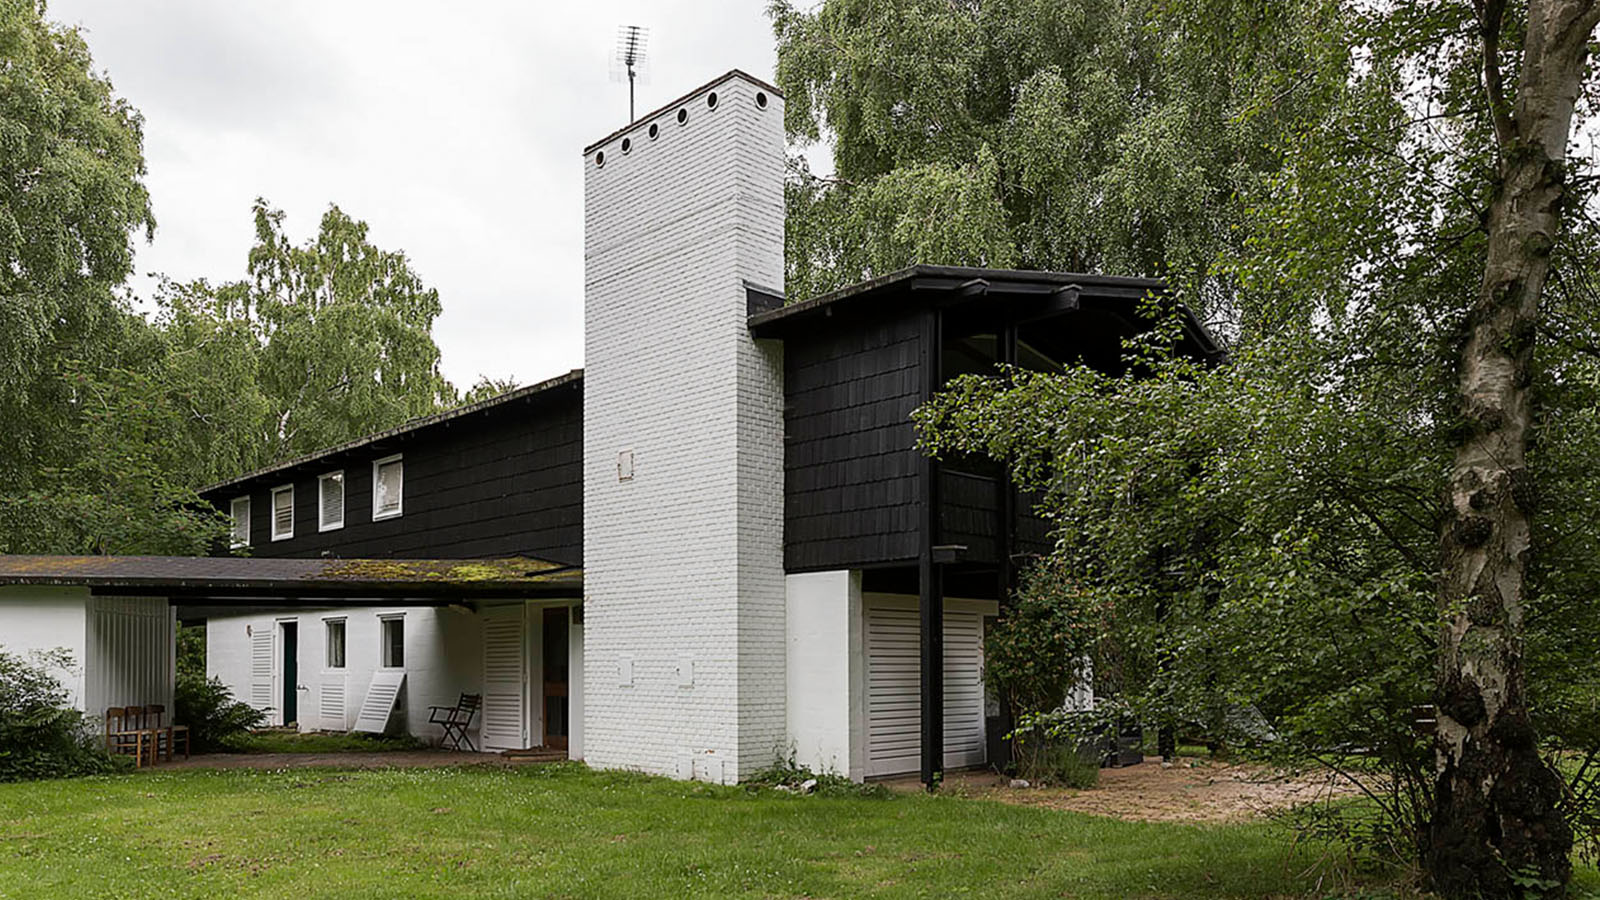 Esken - Svenn Eske Kristensen's private holiday home